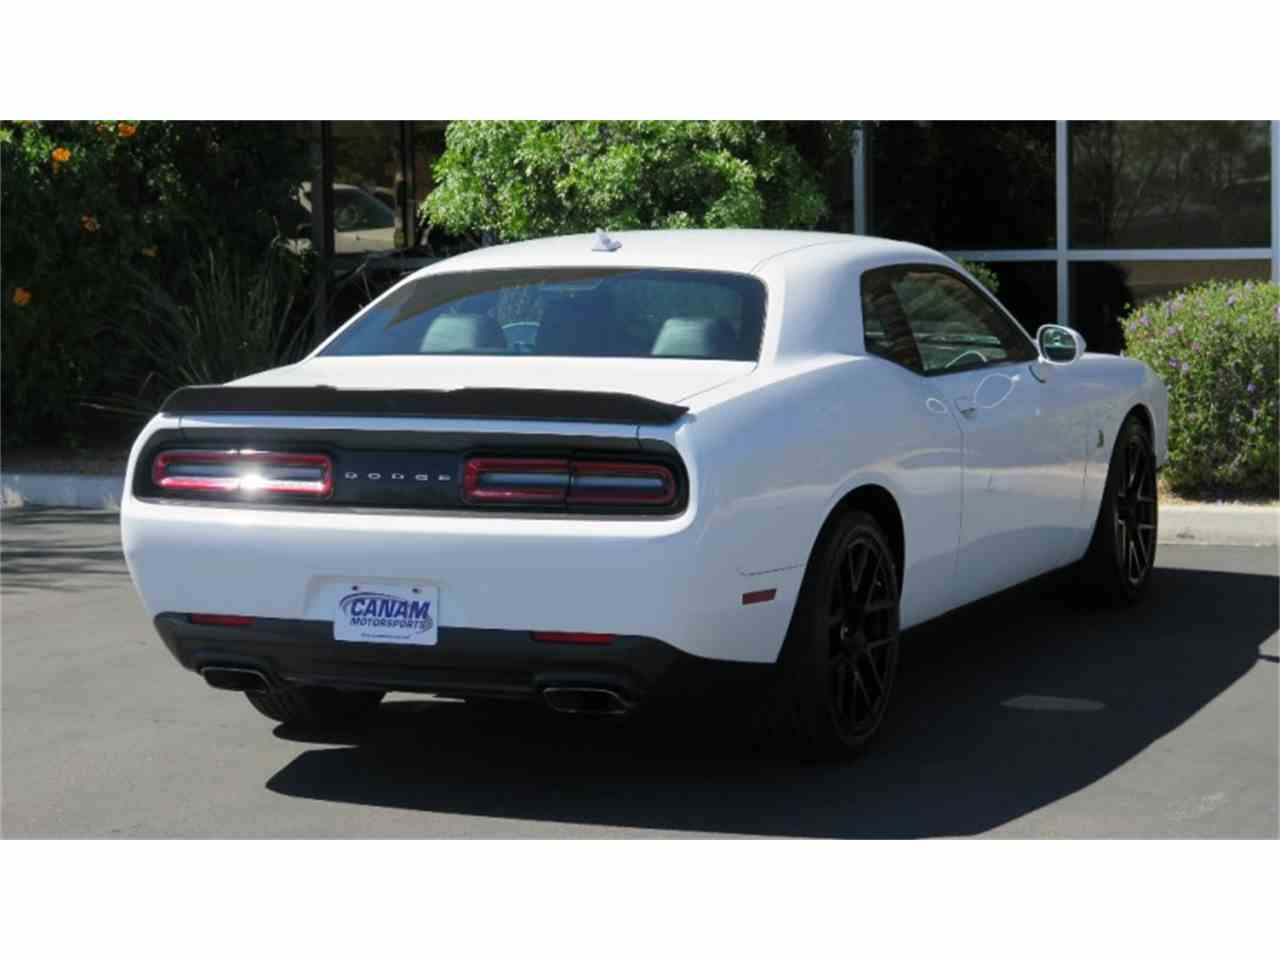 2015 dodge challenger r t scat pack 6 4l for sale cc 1008420. Black Bedroom Furniture Sets. Home Design Ideas